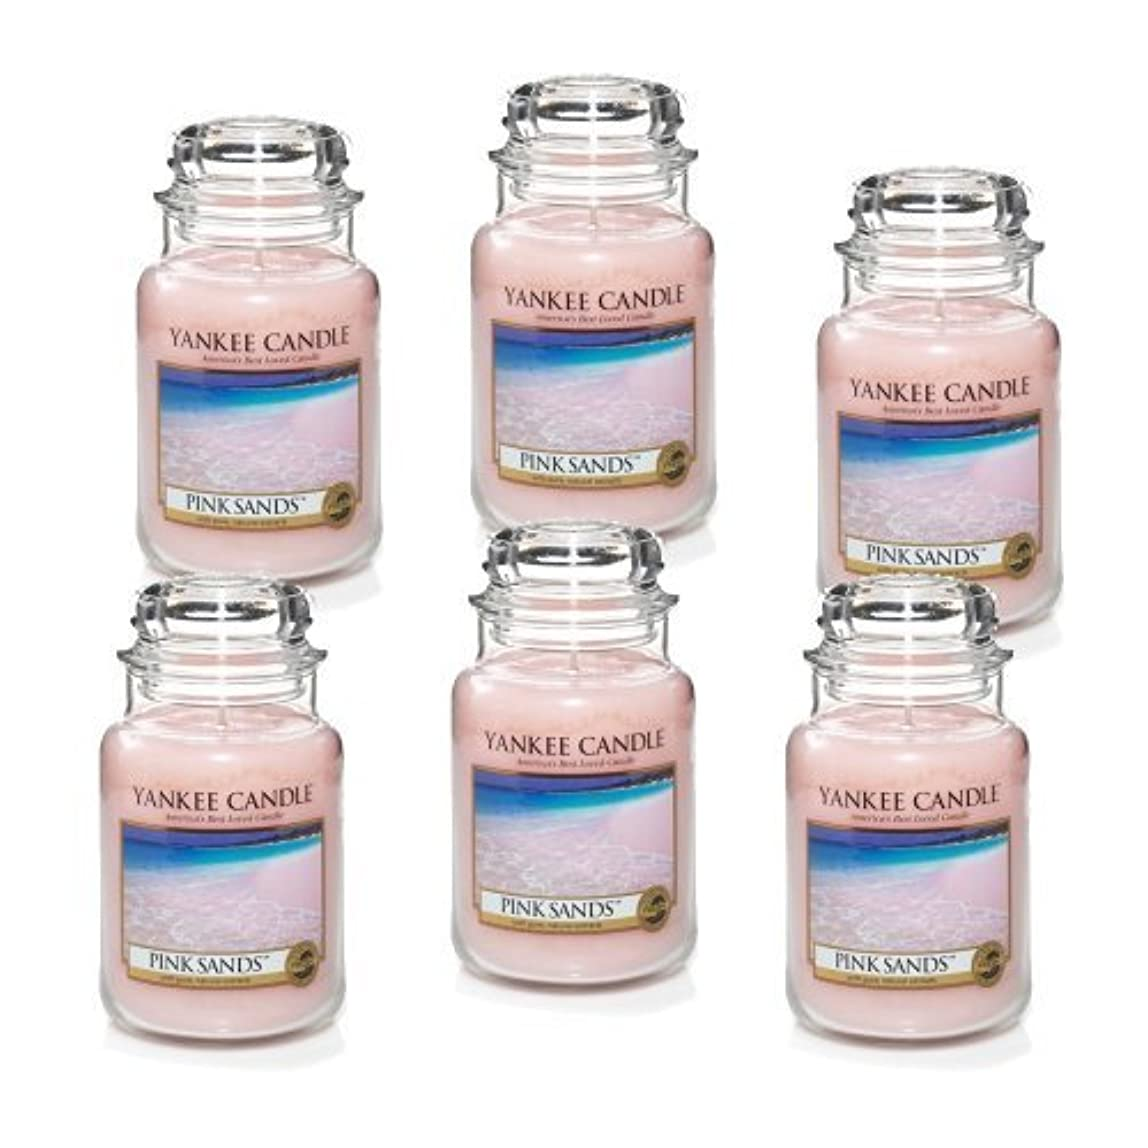 おじいちゃんメアリアンジョーンズ説明Yankee Candle Company 22-Ounce Pink Sands Jar Candle, Large, Set of 6 by Amazon source [並行輸入品]